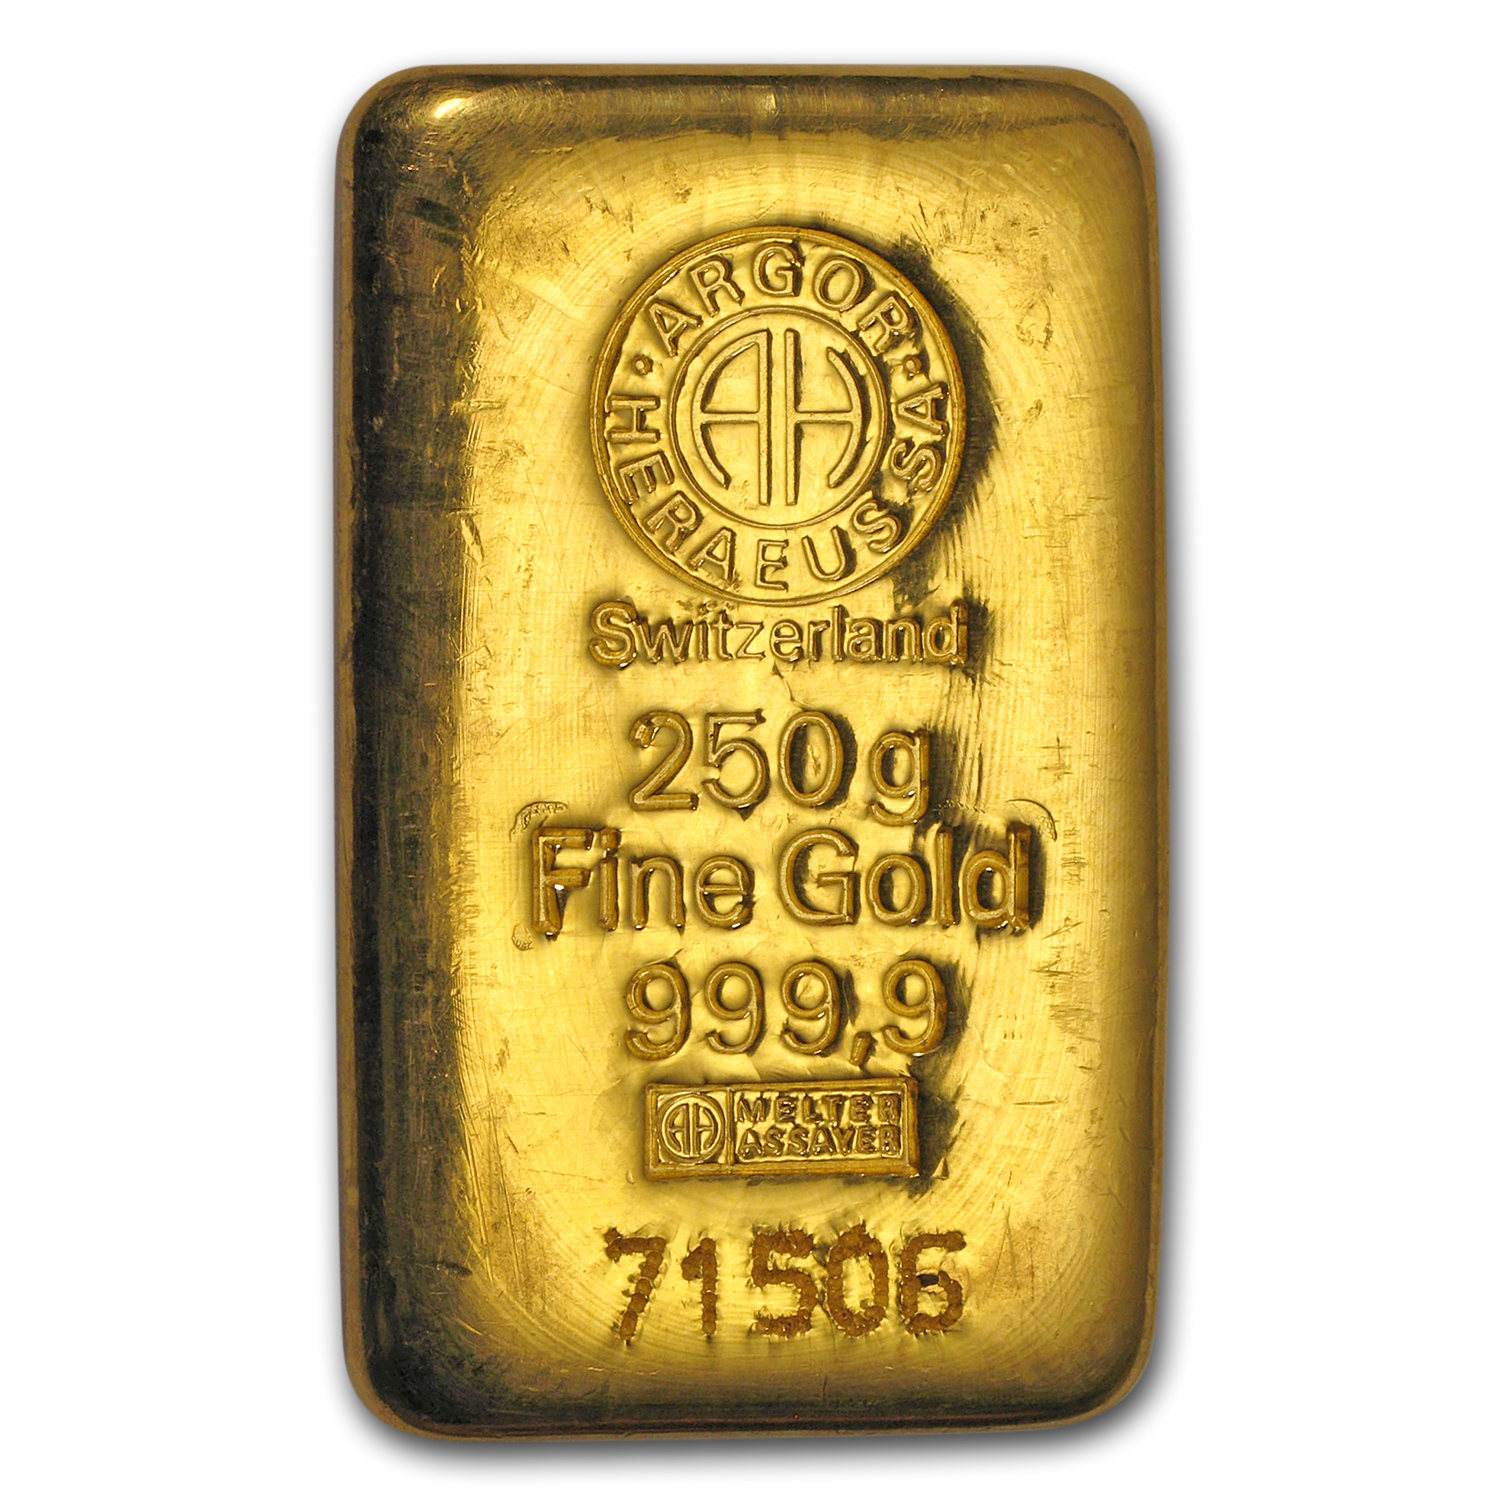 essayeur fonduer gold bar Buy one ounce pamp suisse platinum bars from sd bullion and join more than  30000 investors that  free gold and silver investing guide  furthermore, the  'essayeur fondeur' mark below the purity of platinum, verifies that the bar was.